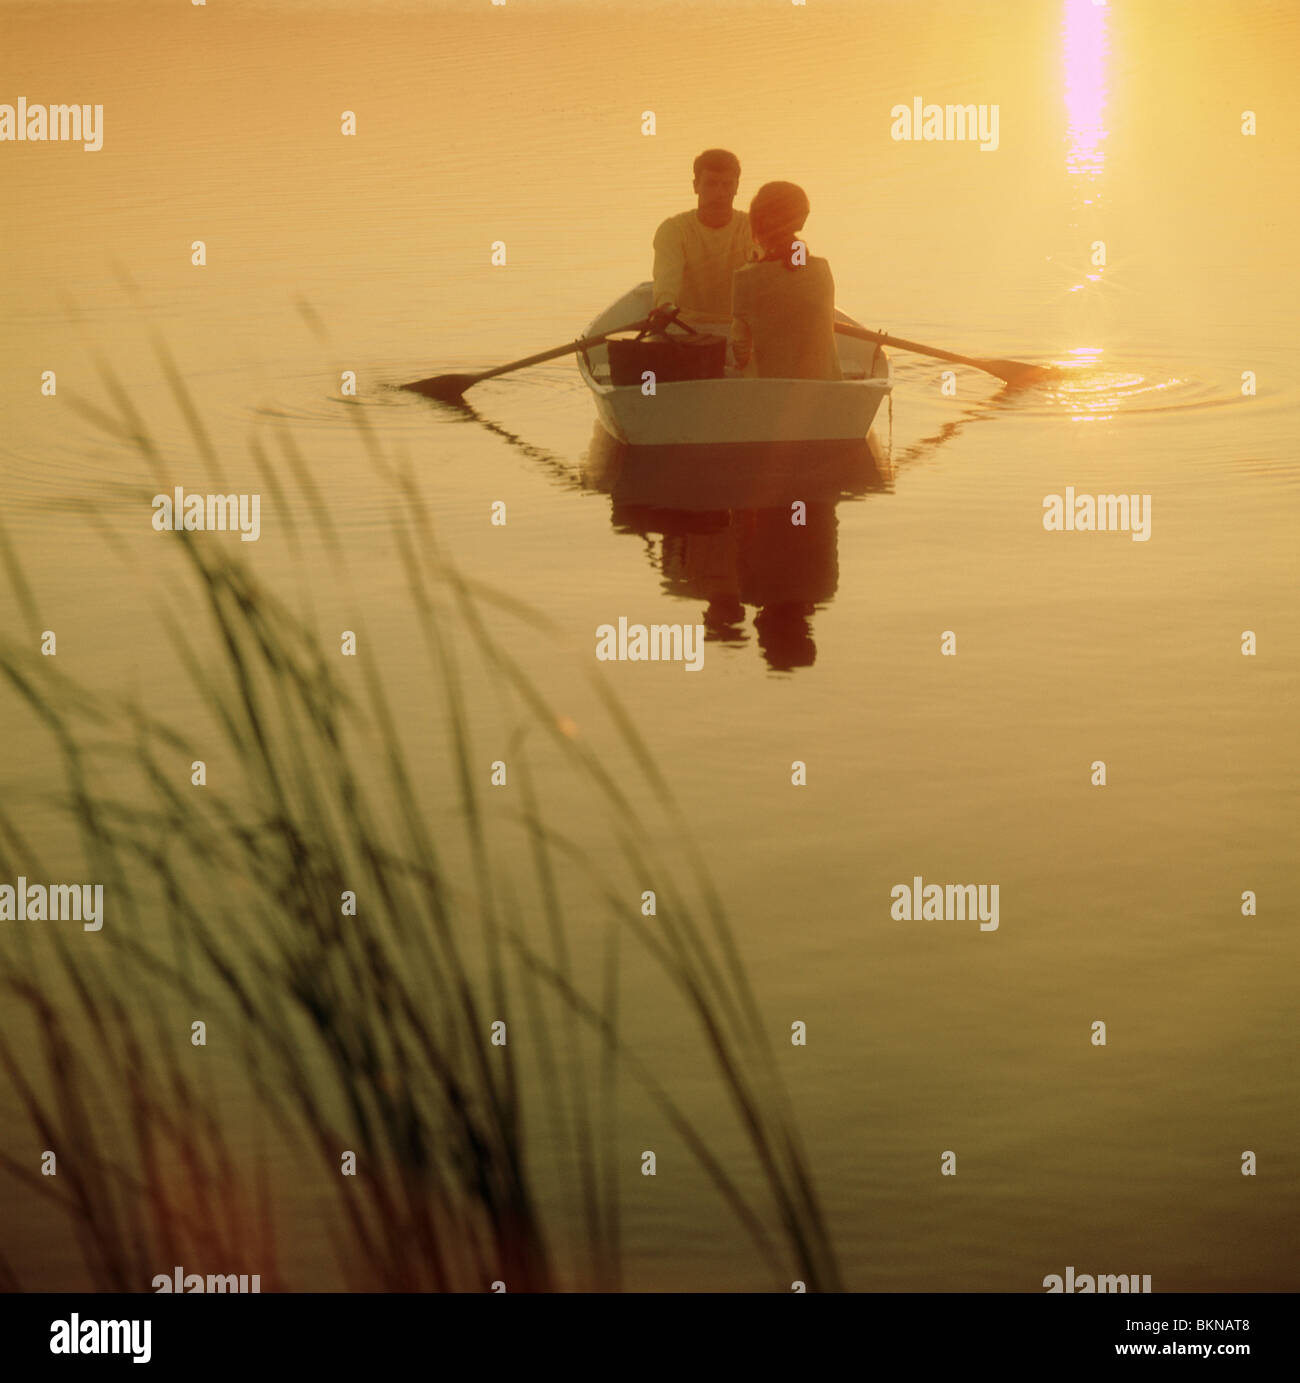 Couple on a row boat during the sunset - Stock Image